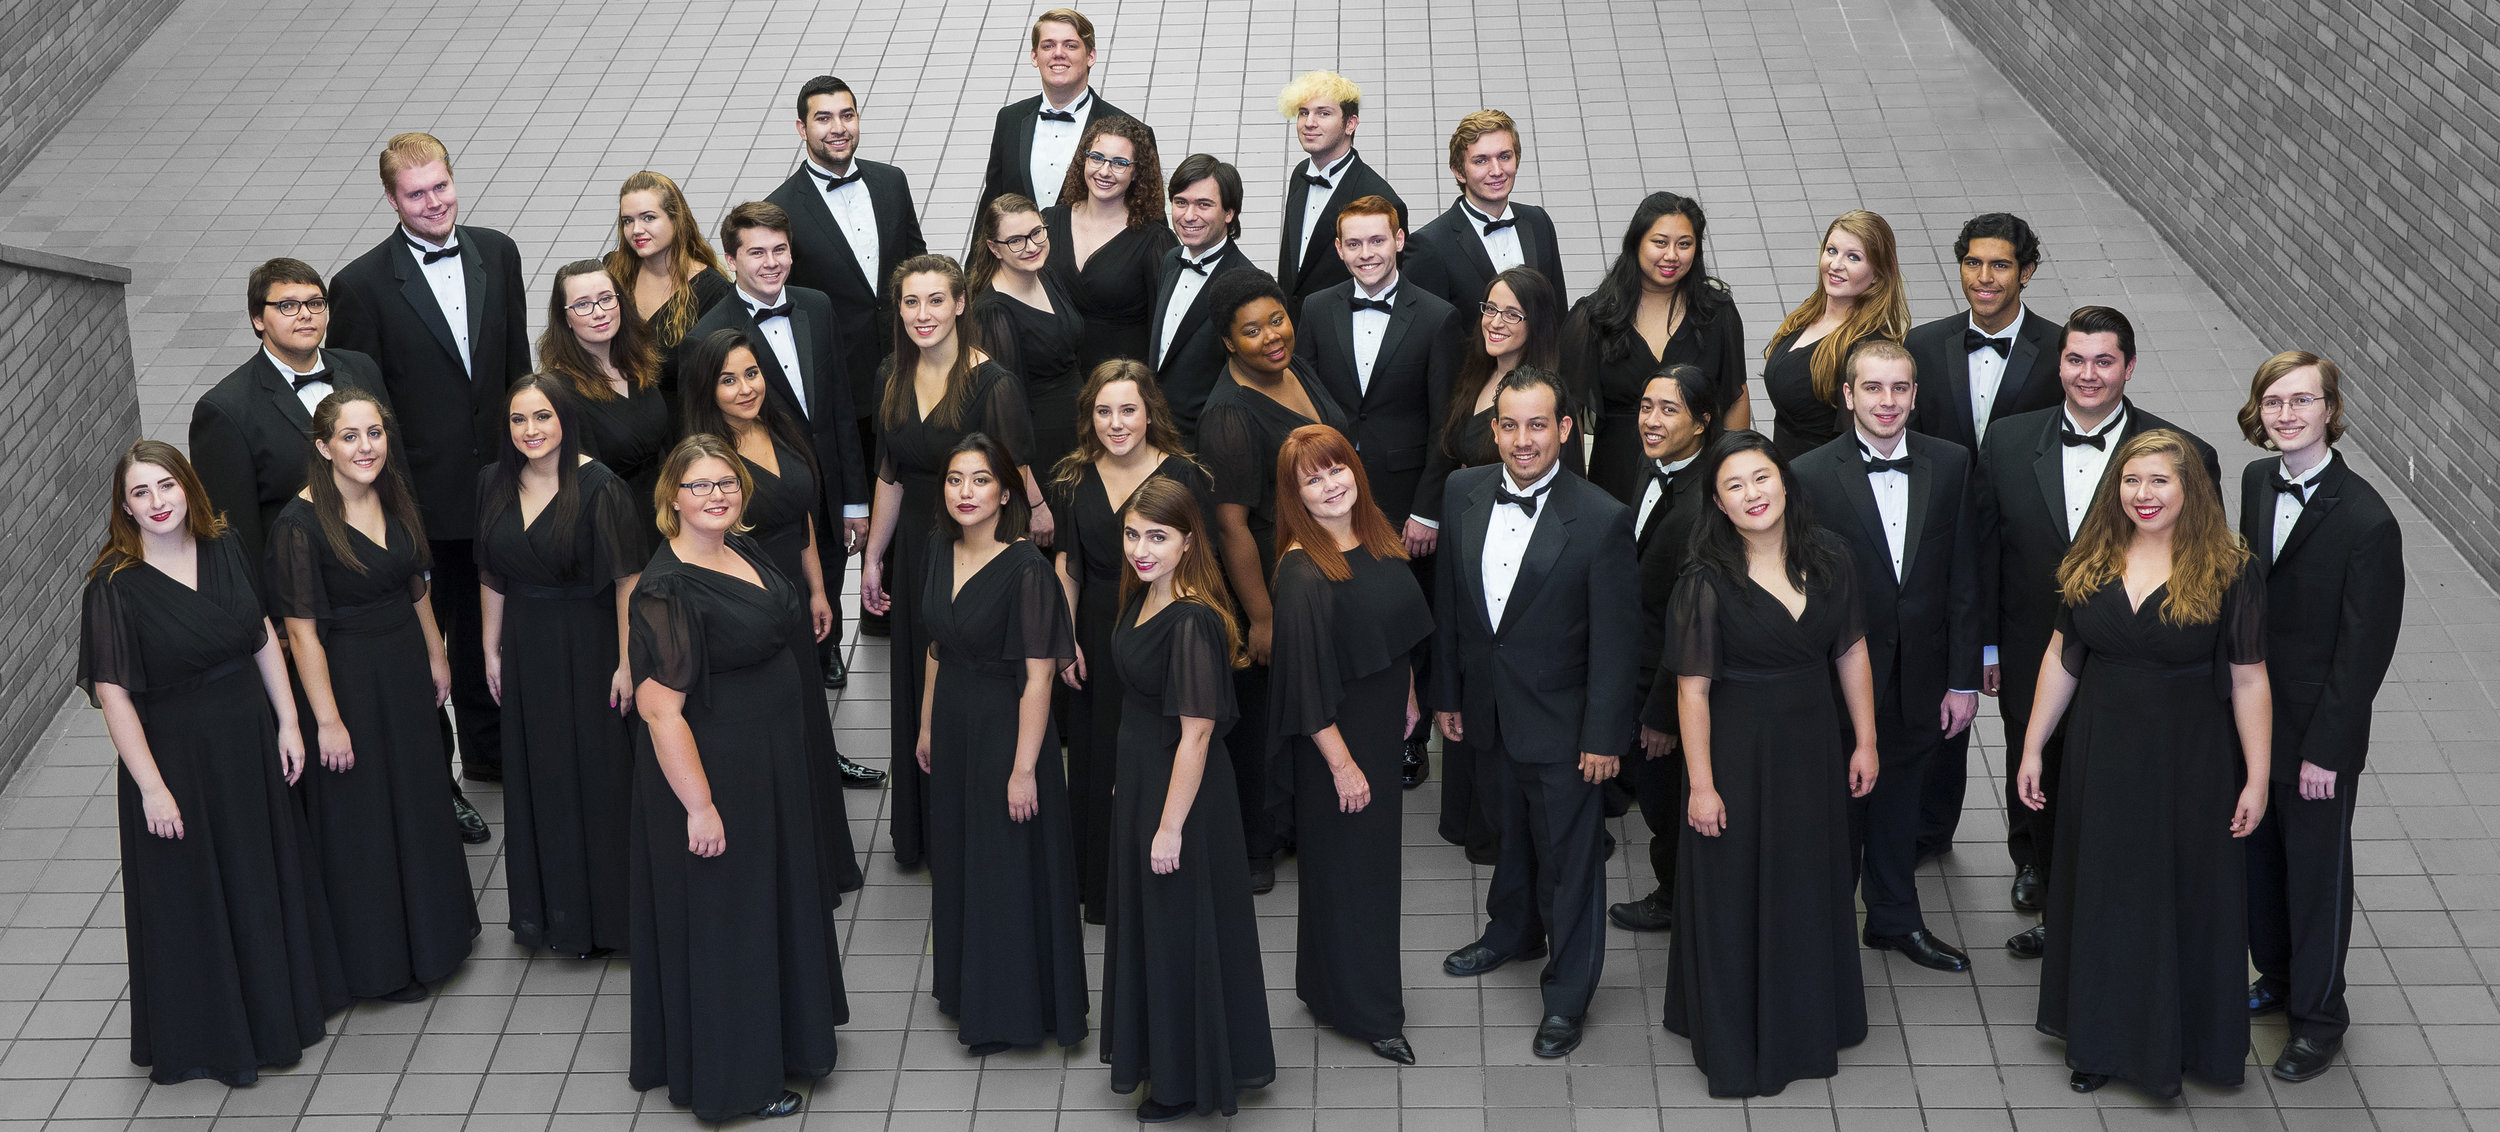 Chamber Choir - An auditioned mixed-voice ensemble that rehearses three times per week and focuses largely on a cappella works calling for tight ensemble precision.